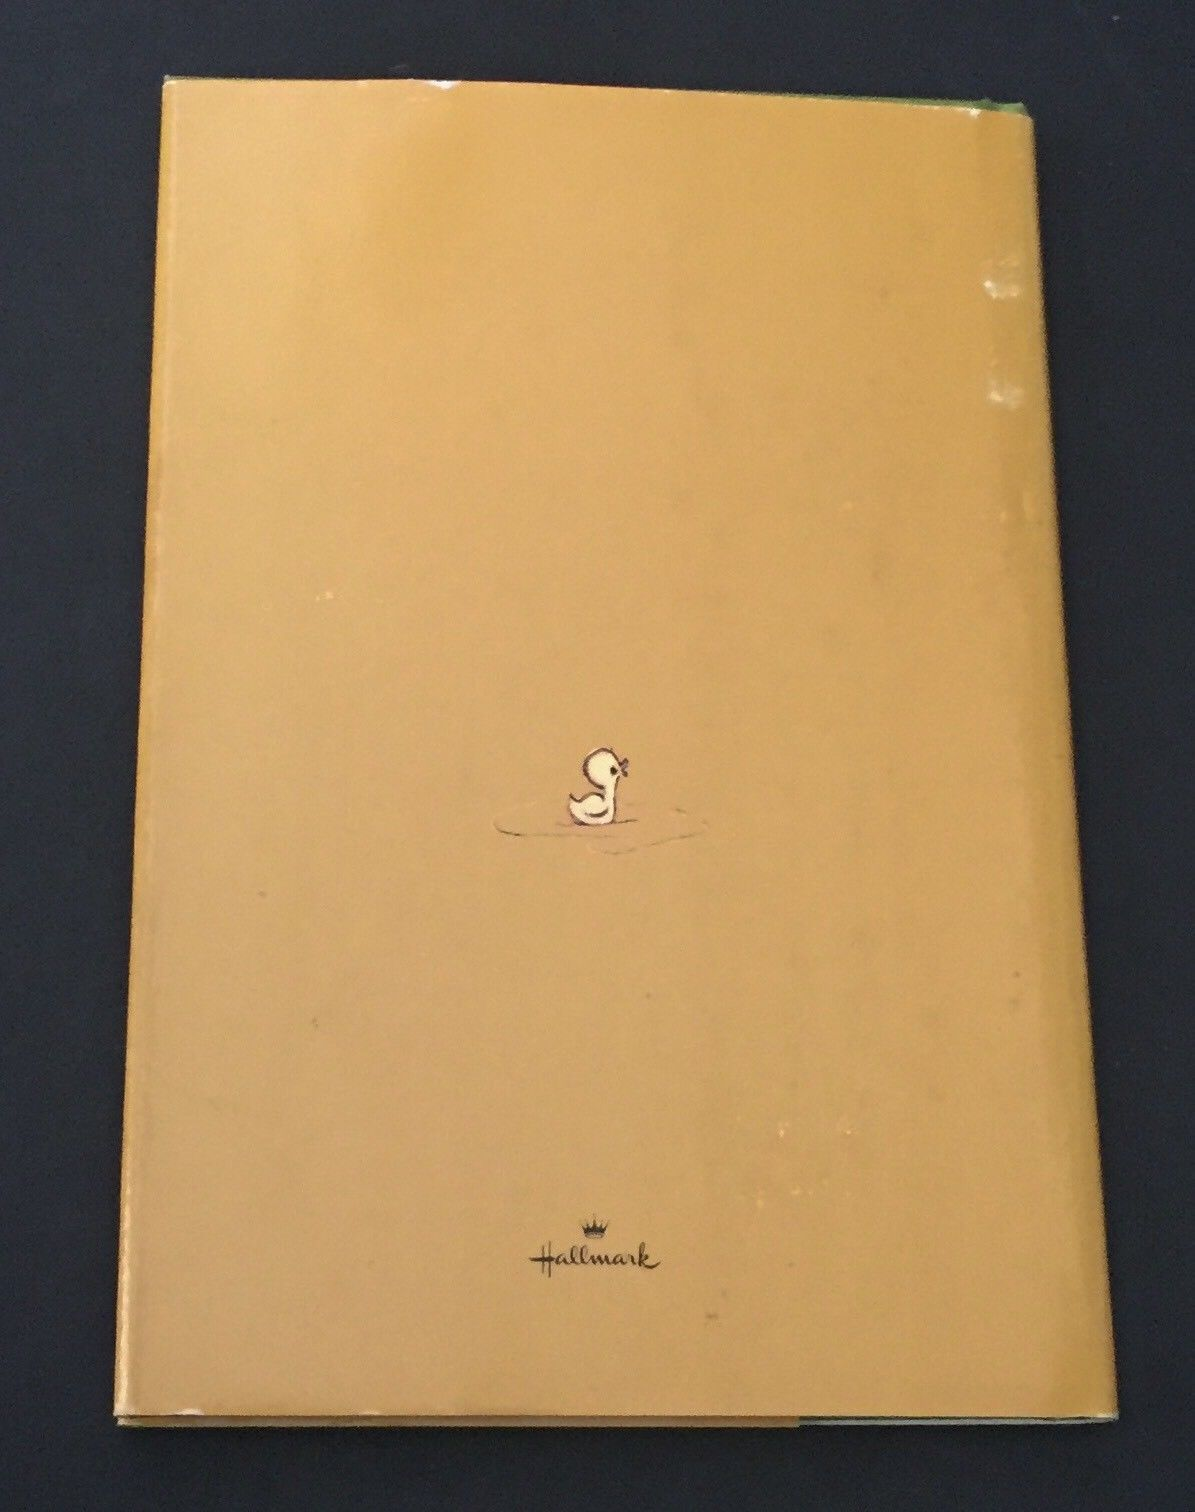 Vtg The Gold Of Friendship Hallmark Book 1967 Small Hardcover Friends Gift